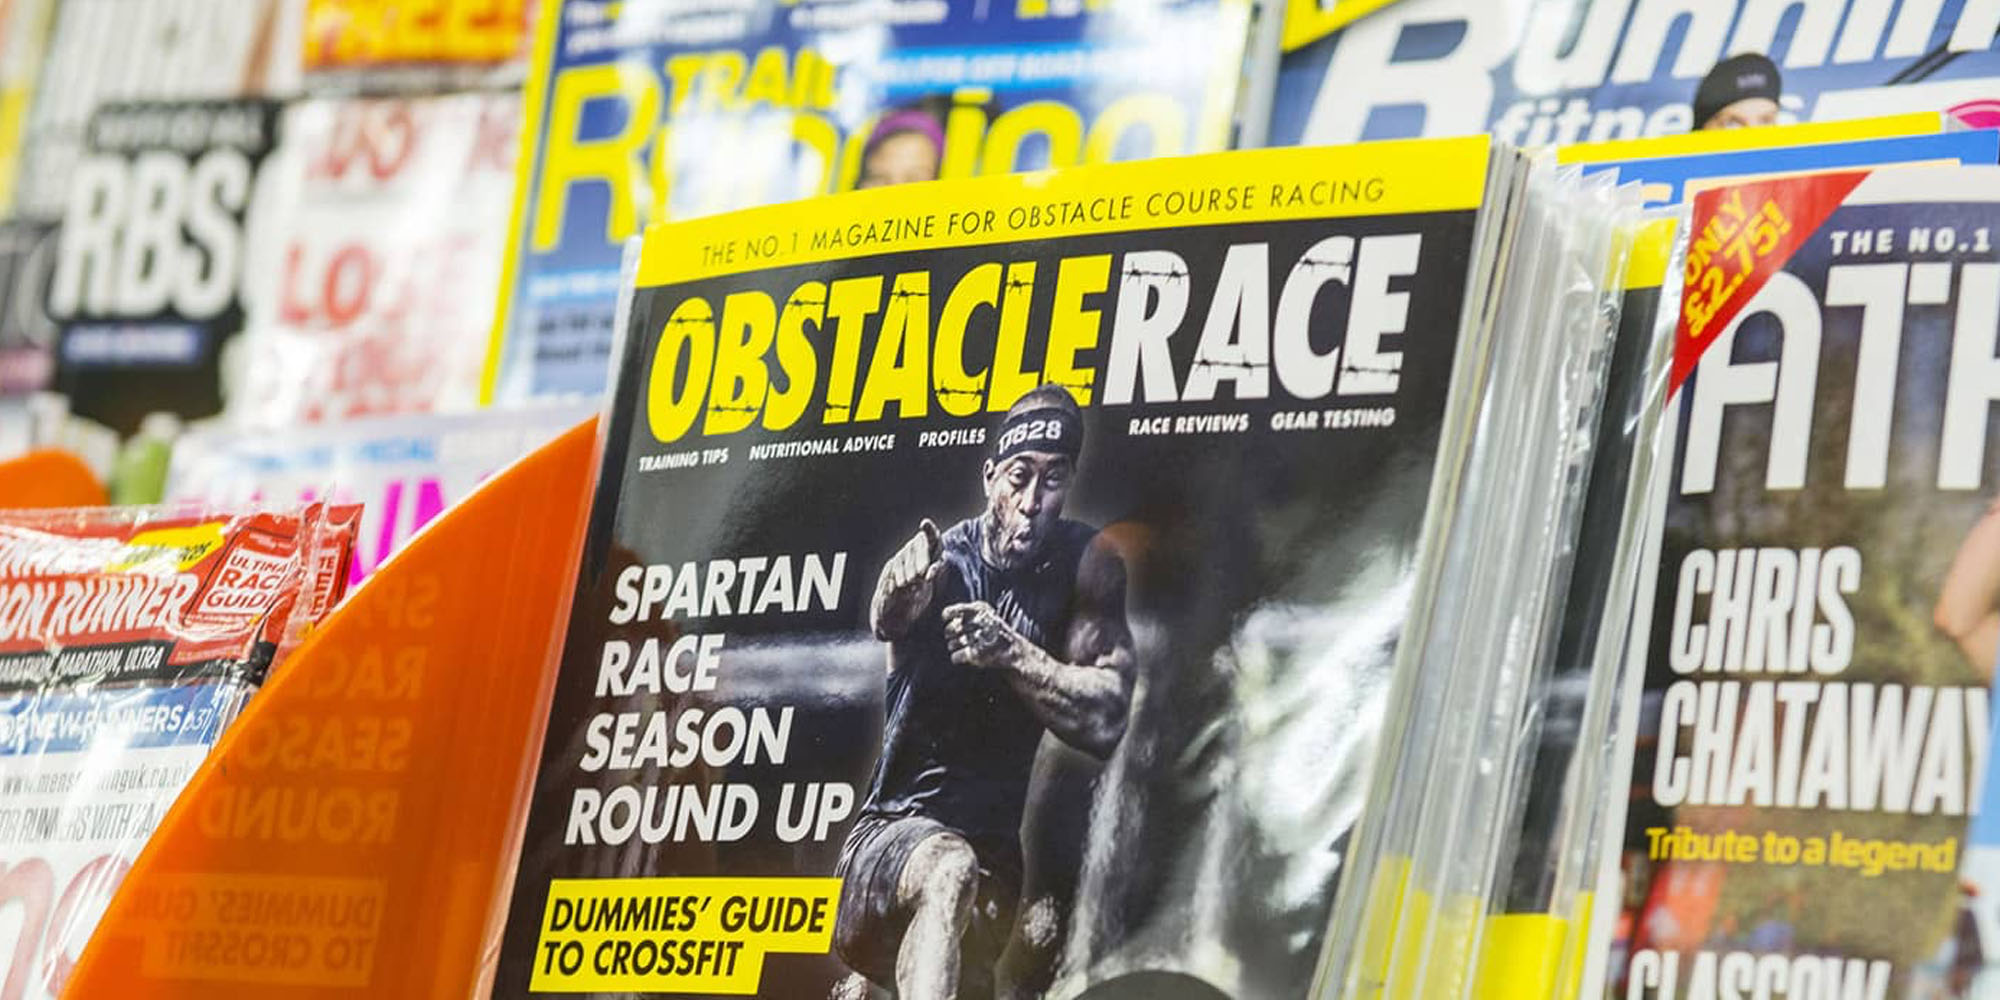 The Obstacle Race Magazine